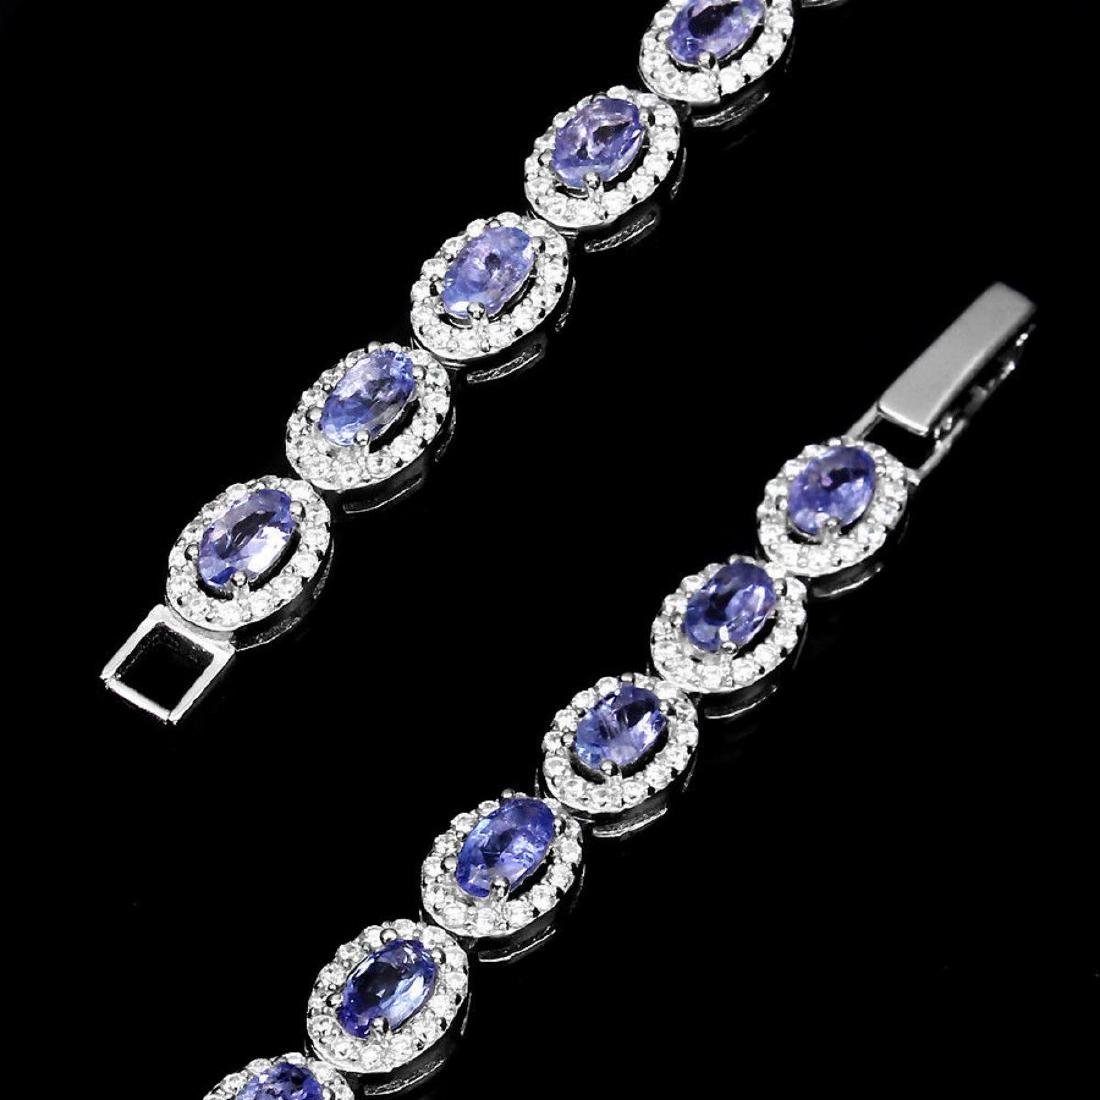 Natural Blue Violet Tanzanite 52.69 Cts Bracelet - 3